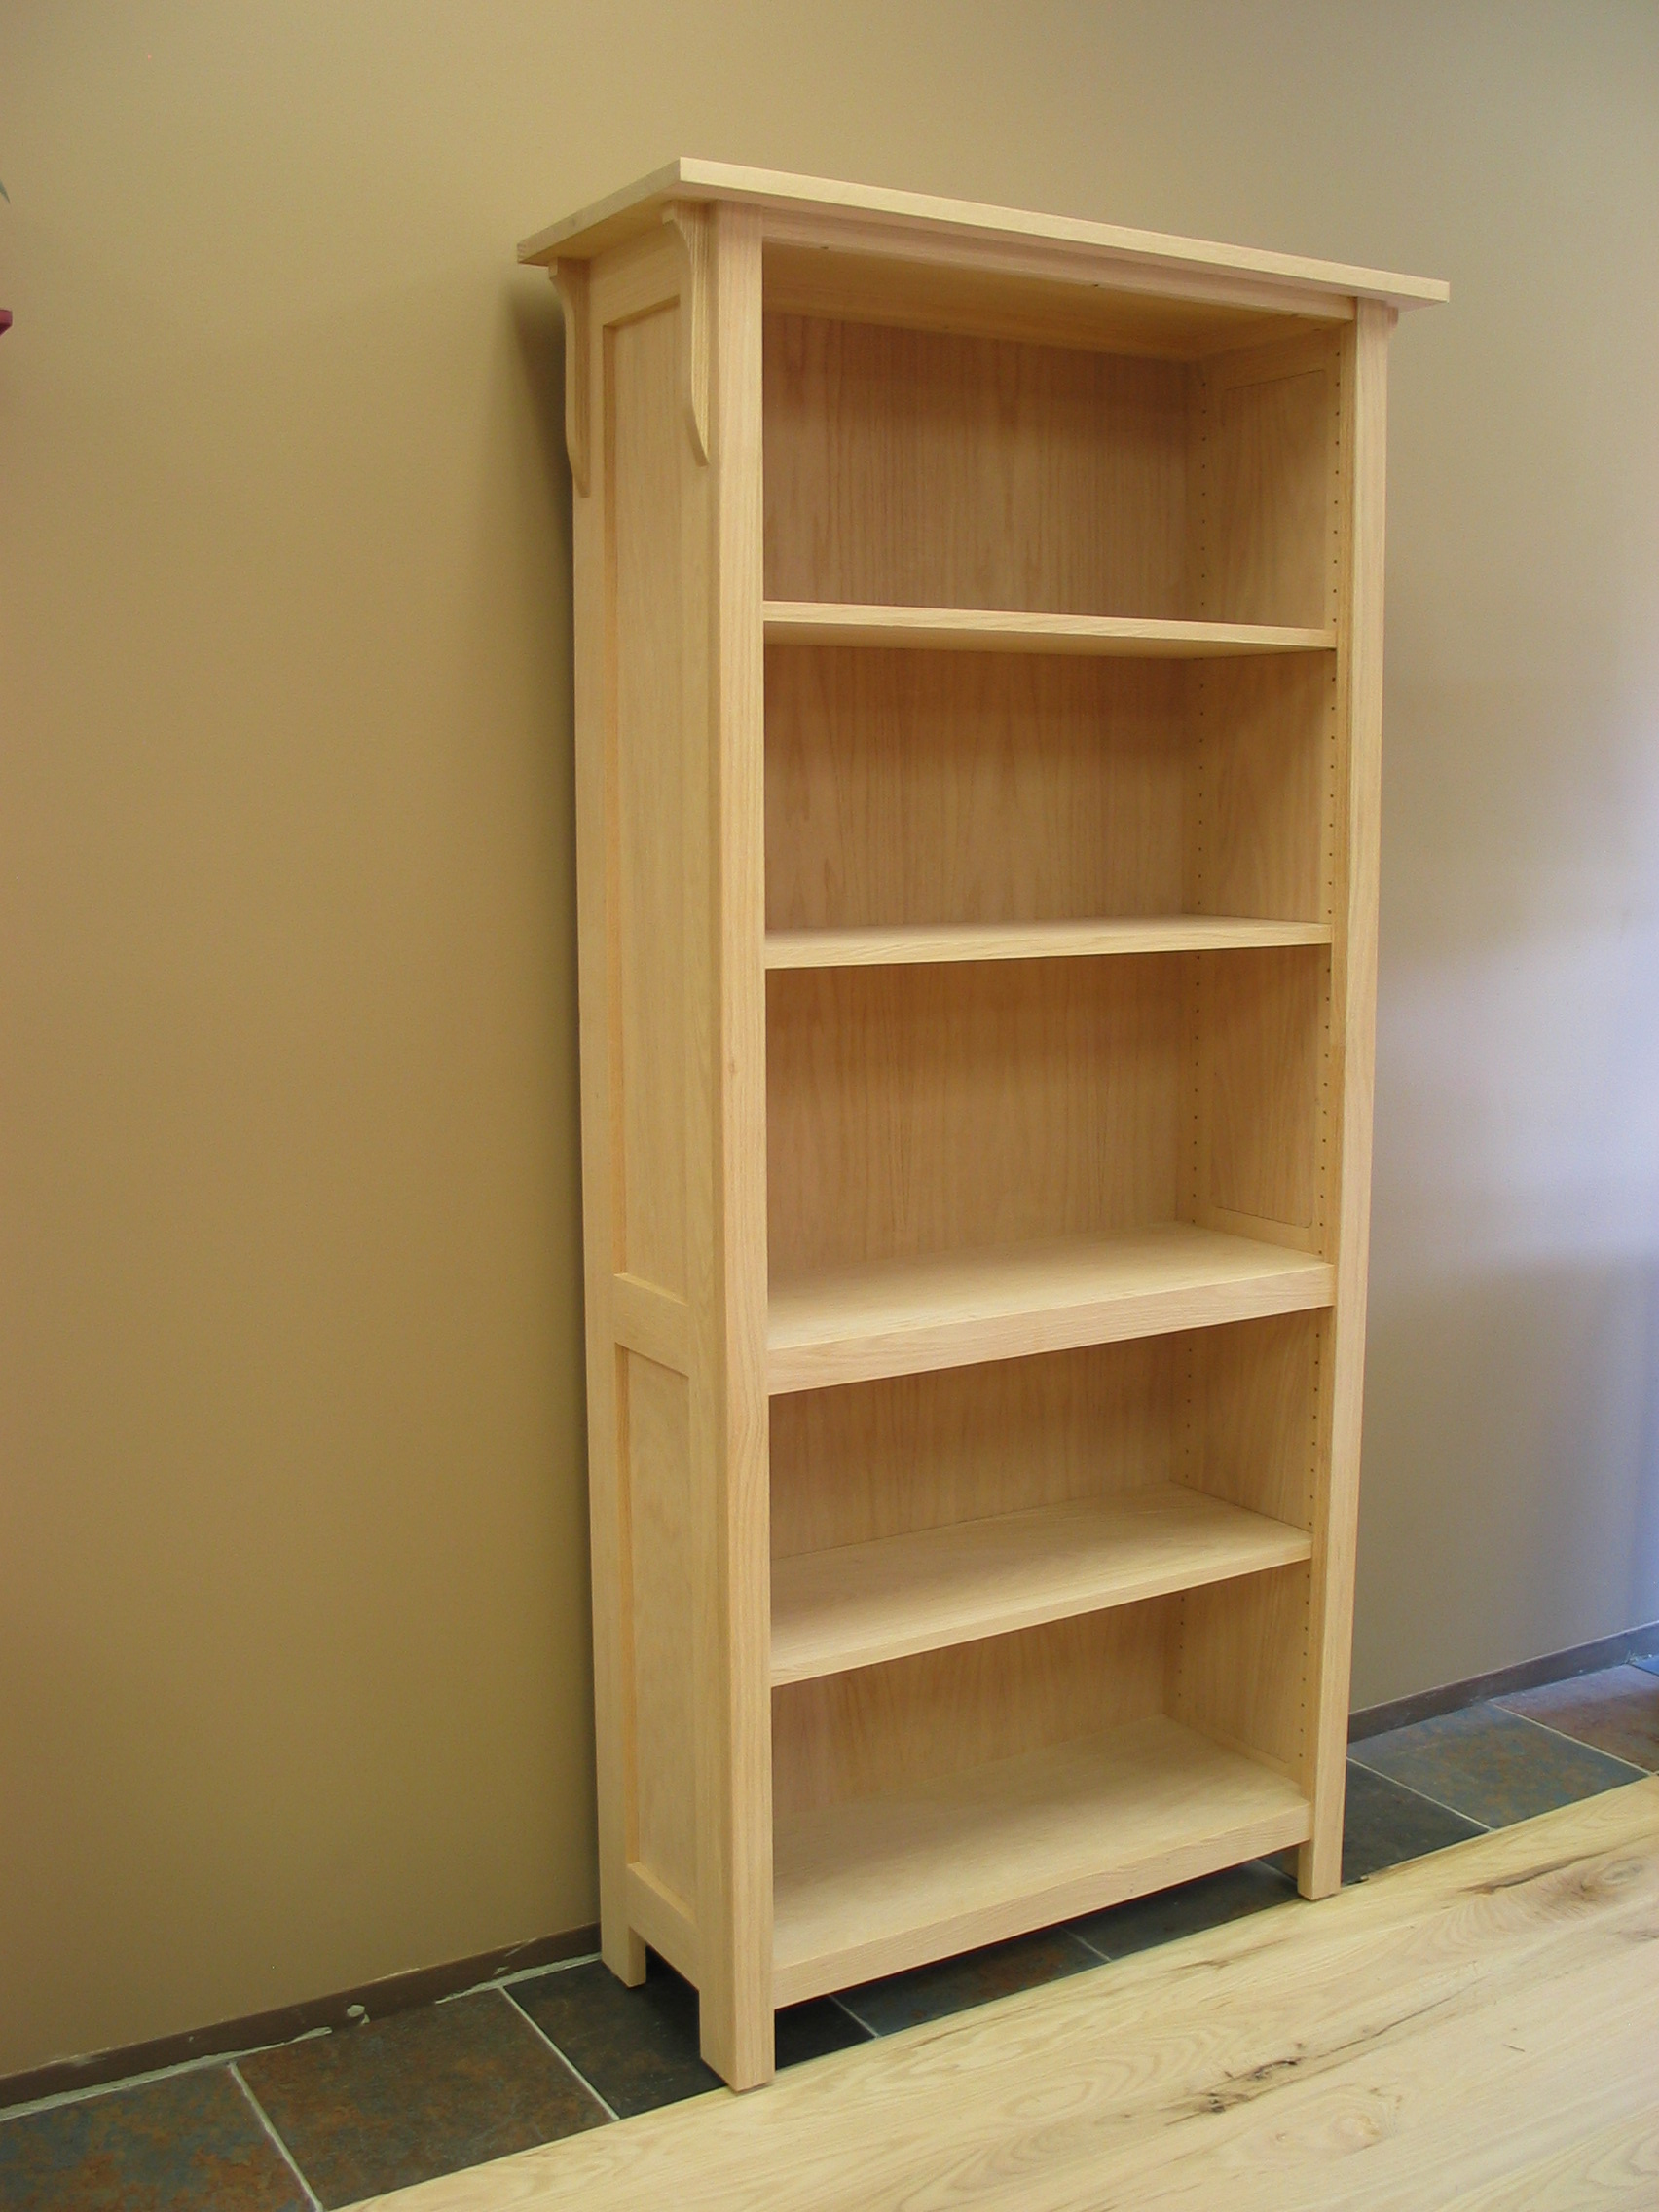 Mission Bookcase 17 34 Deep